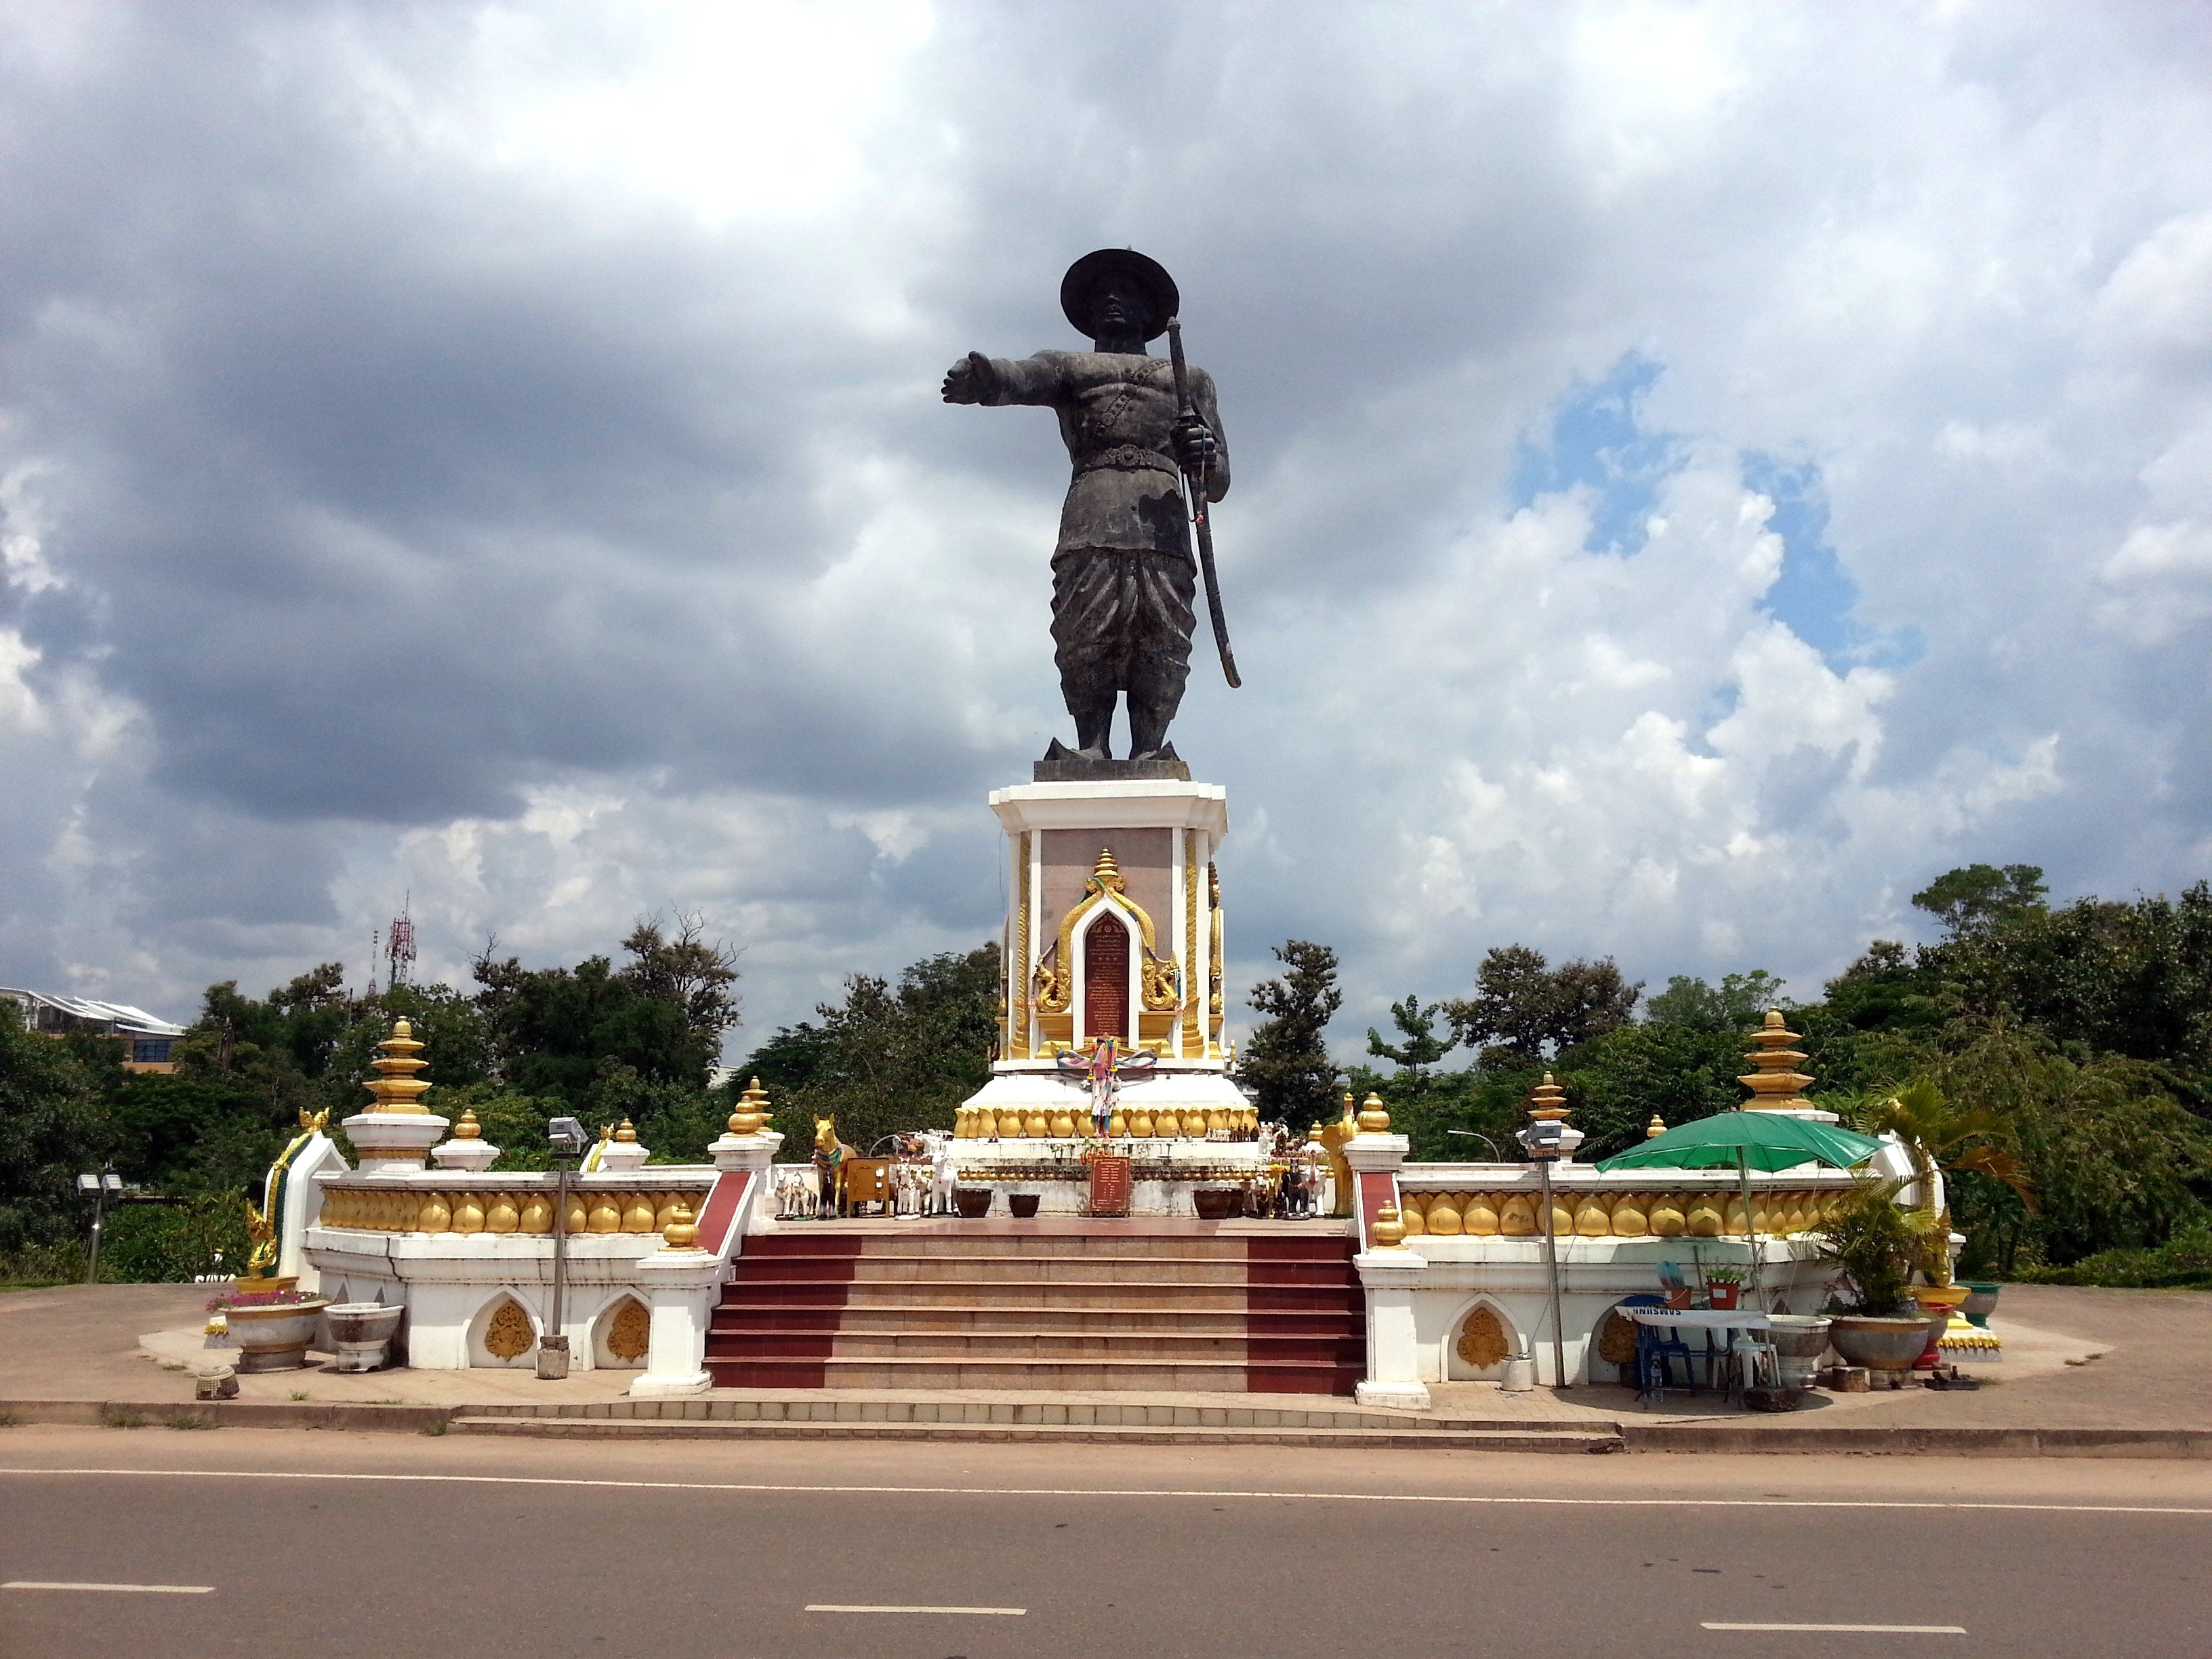 Chao Anouvong Statue in Vientiane